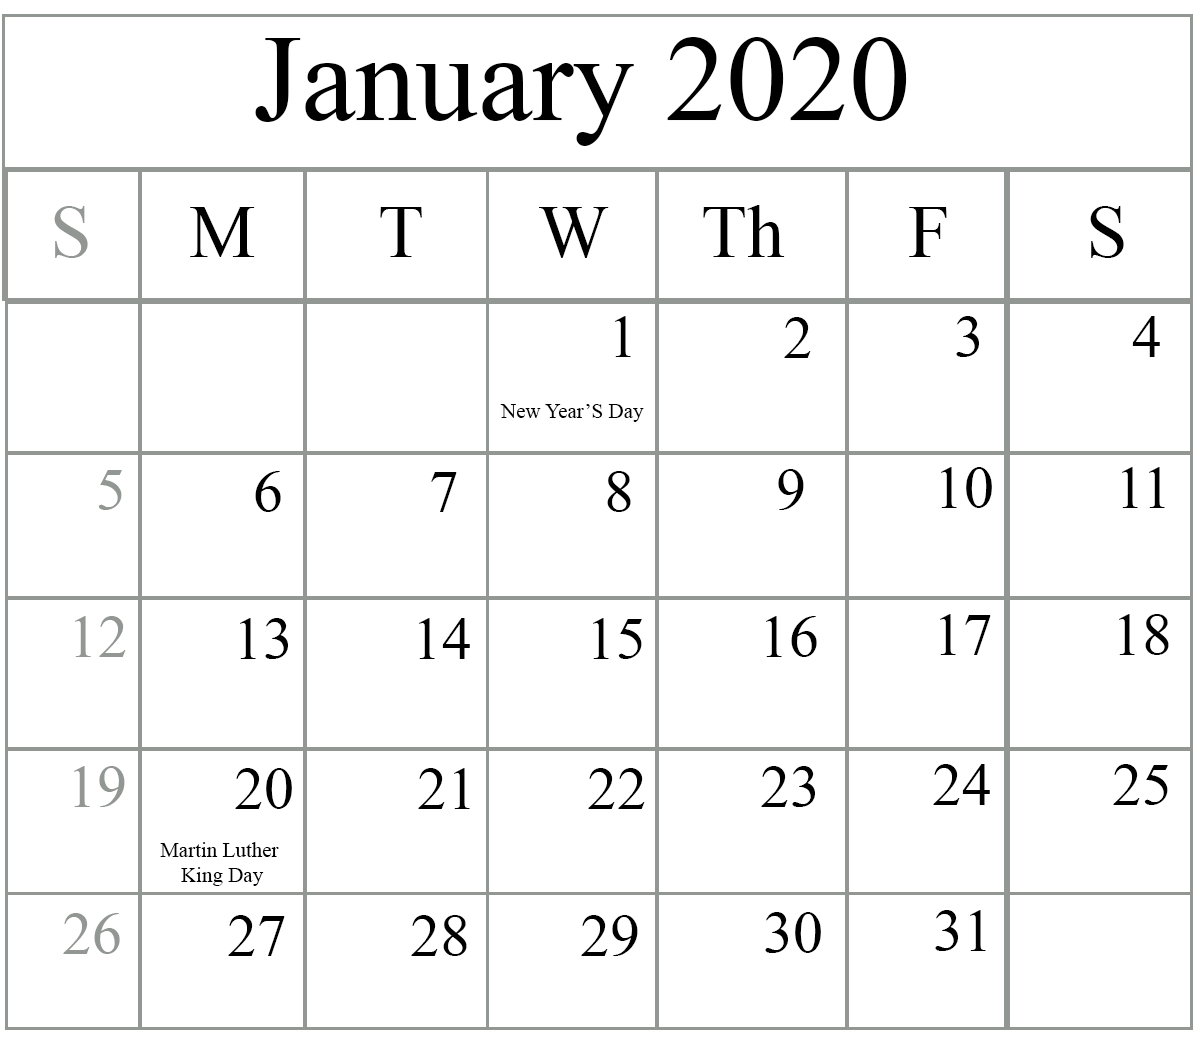 Free January 2020 Printable Calendar In Pdf, Excel & Word with regard to 2020 Calander To Write On